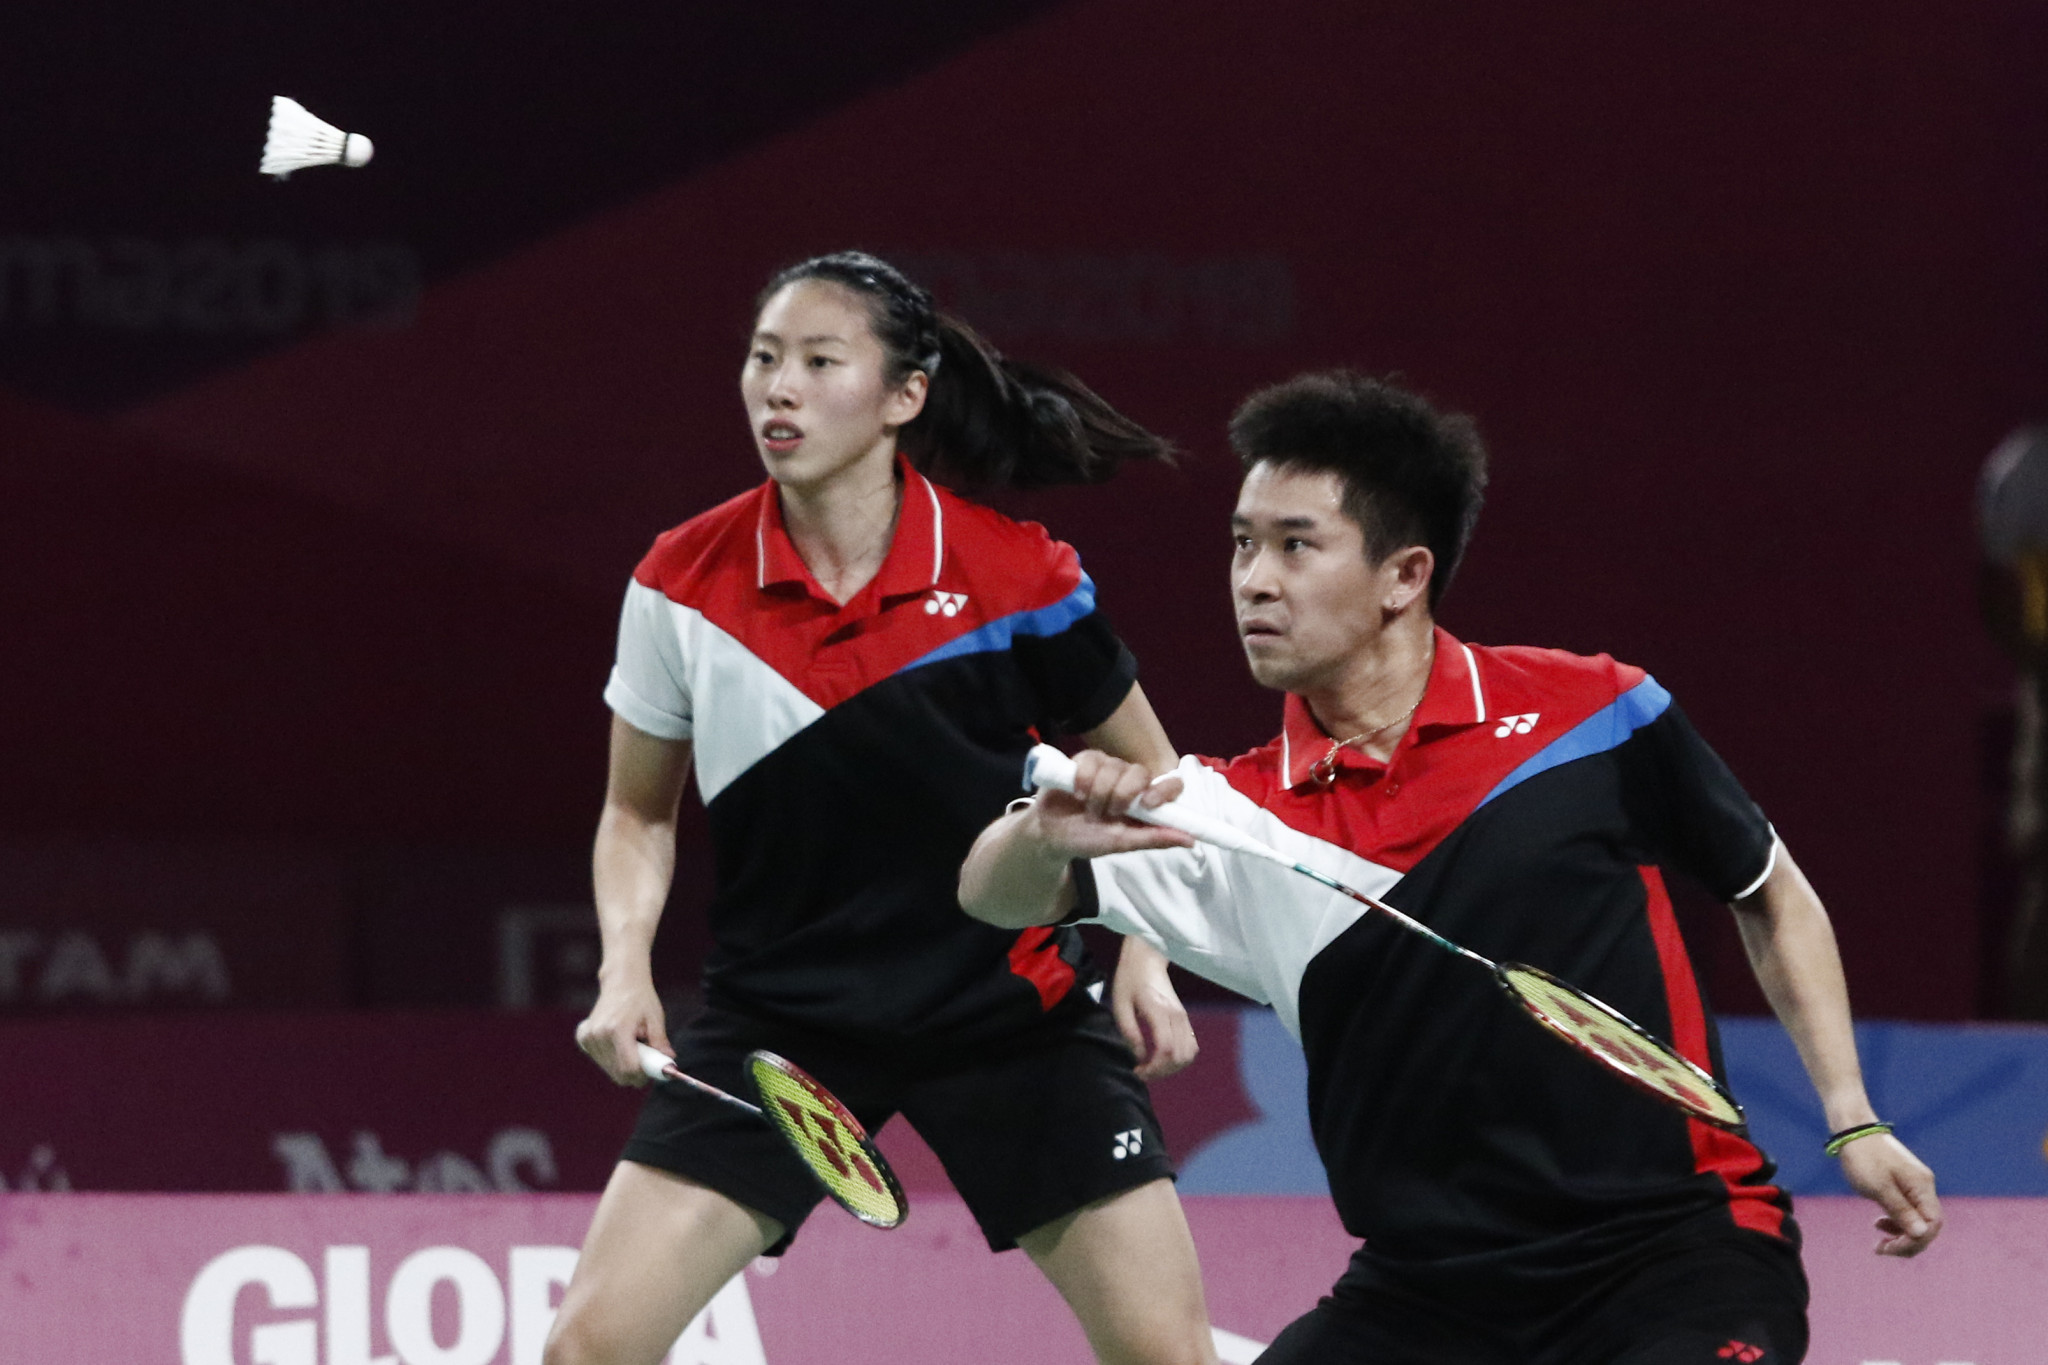 Canada earned four gold medals in badminton at Lima 2019 ©Lima 2019